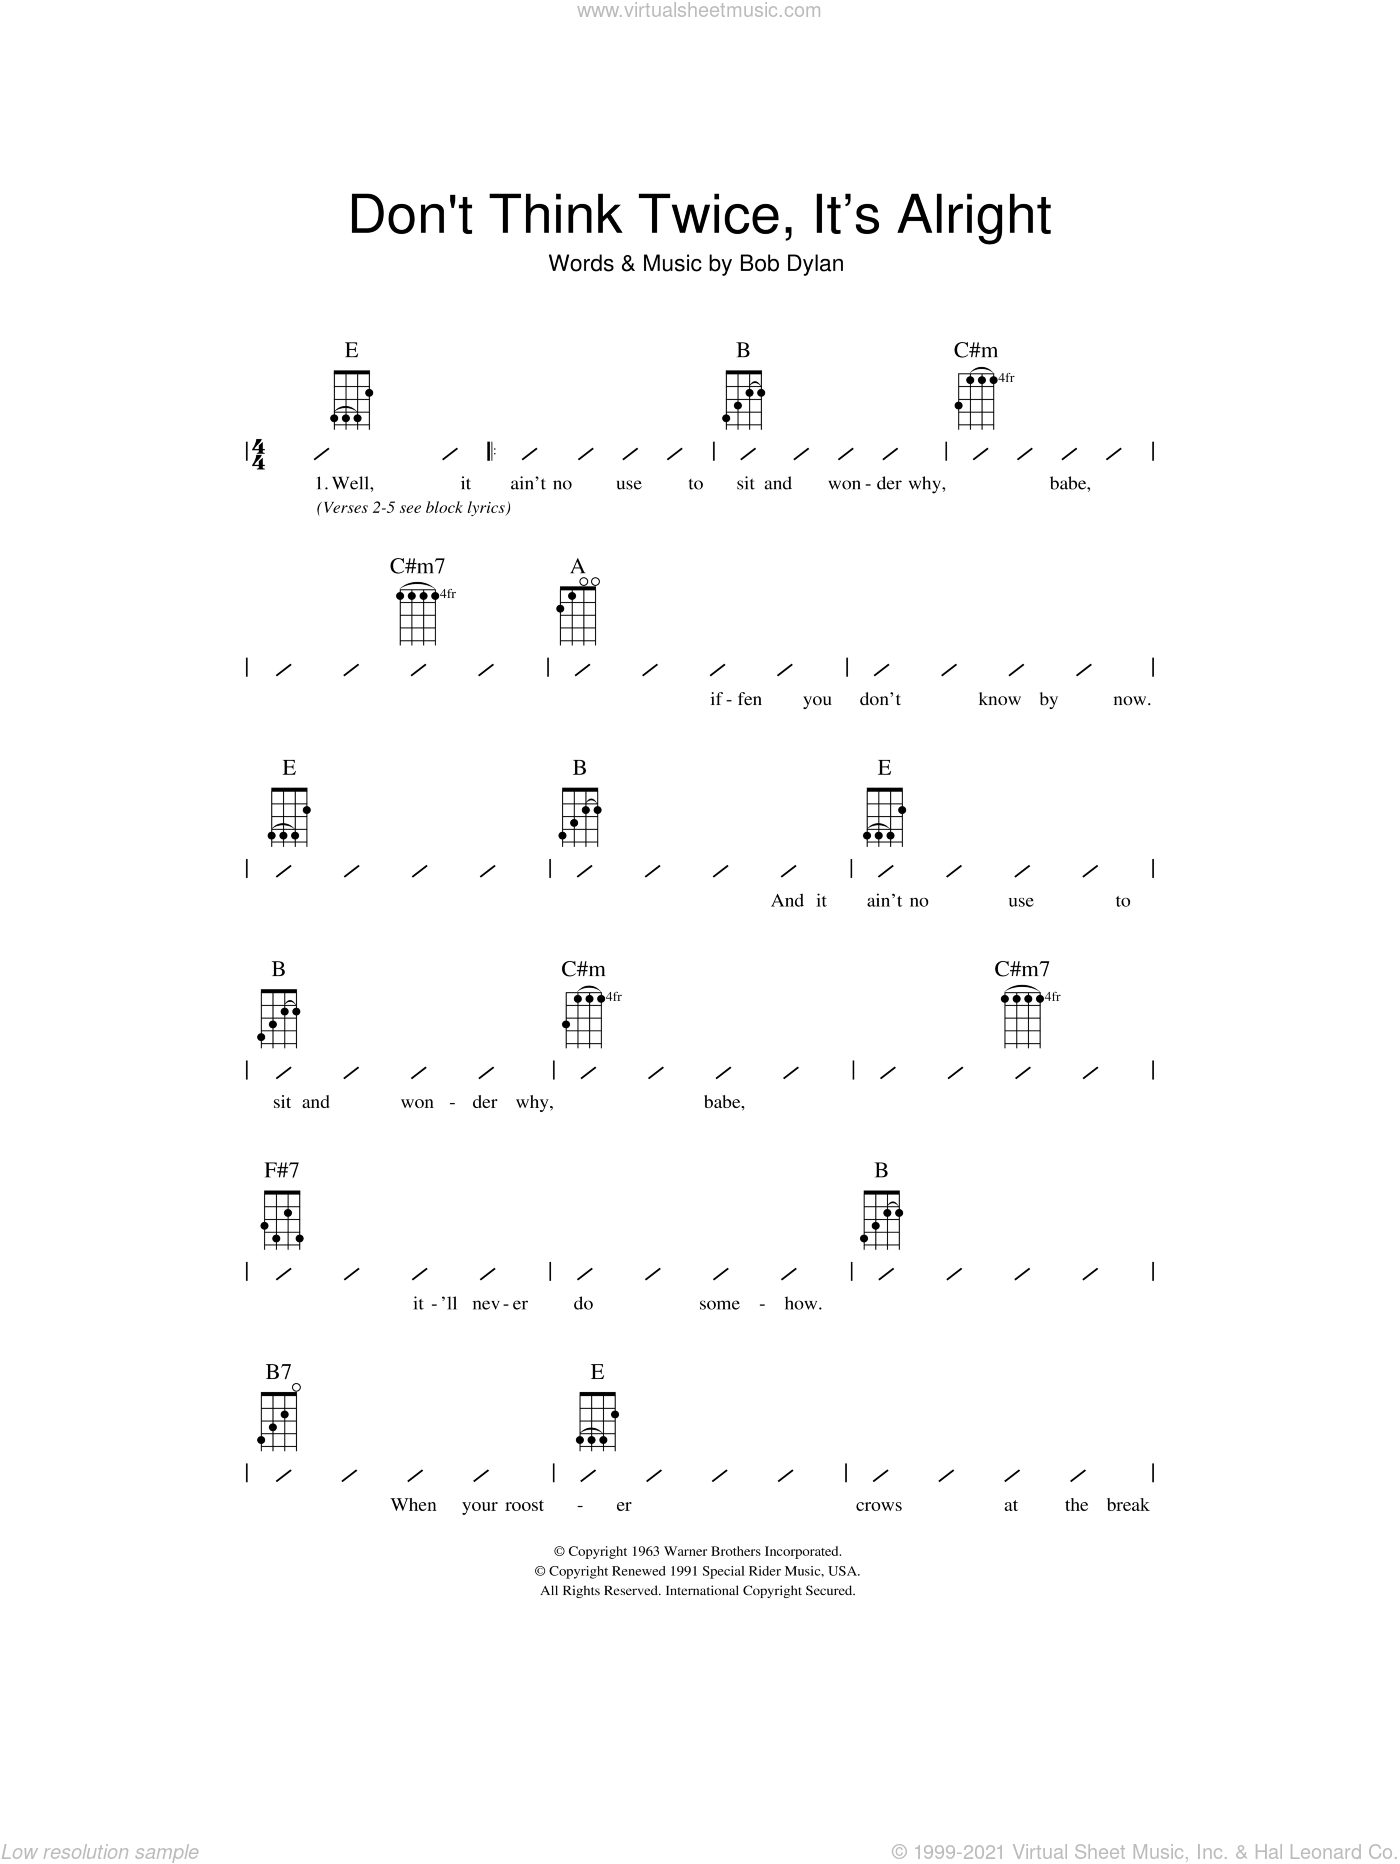 Don't Think Twice, It's All Right sheet music for ukulele (chords) by Bob Dylan